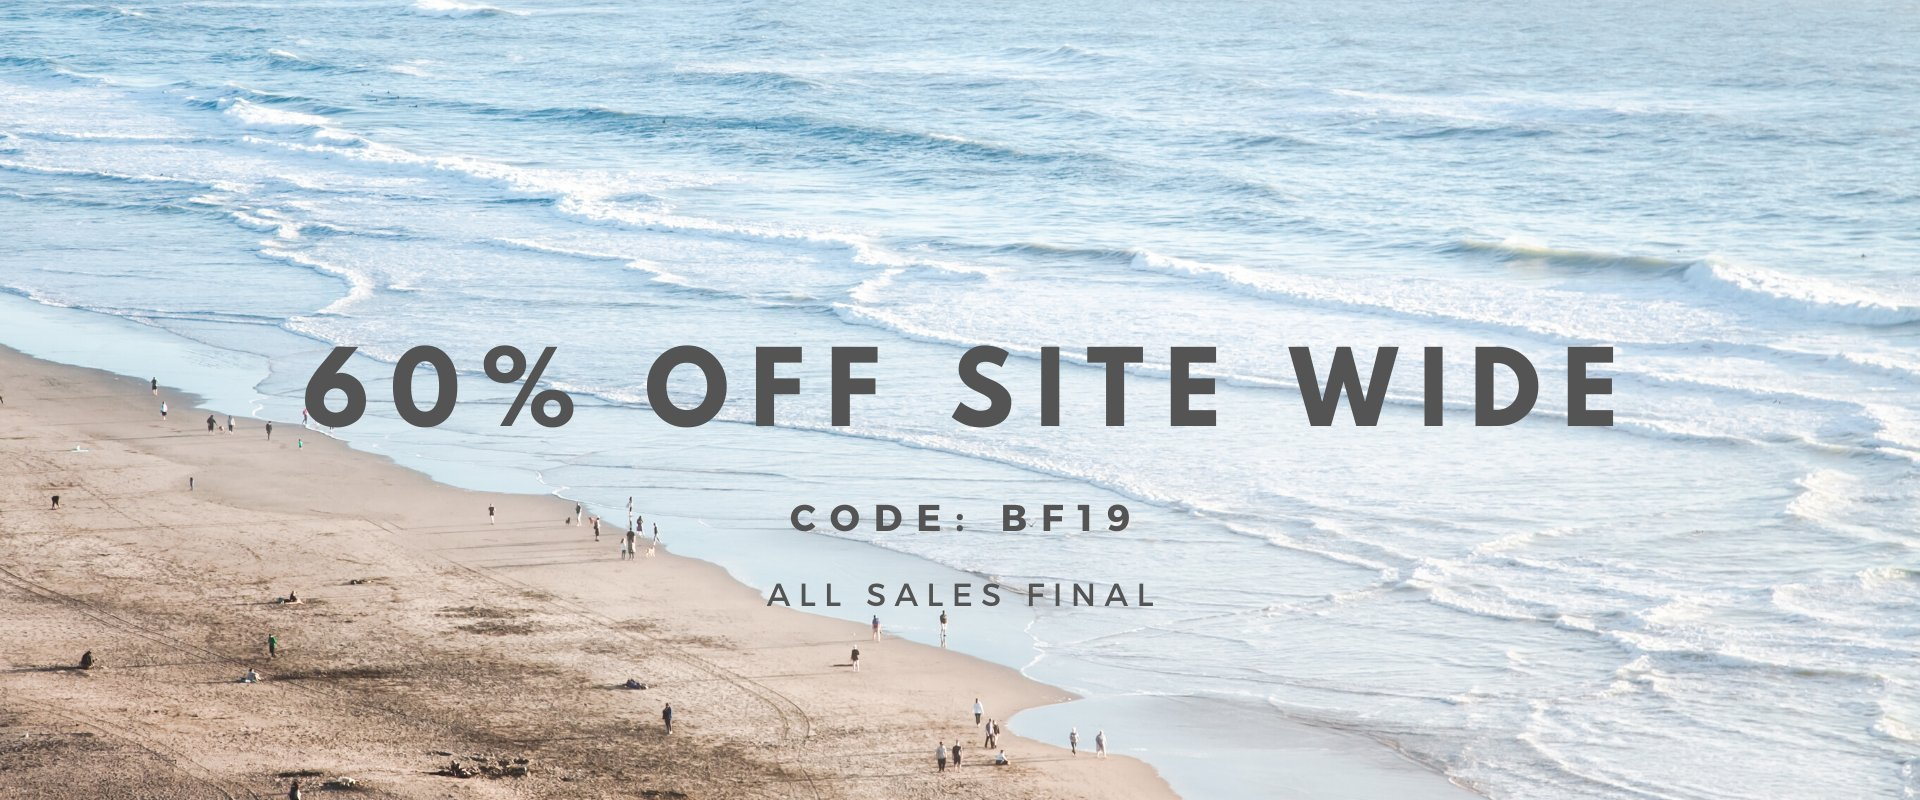 Black Friday 2018 at Lido-West.com - Take 30% off site wide!